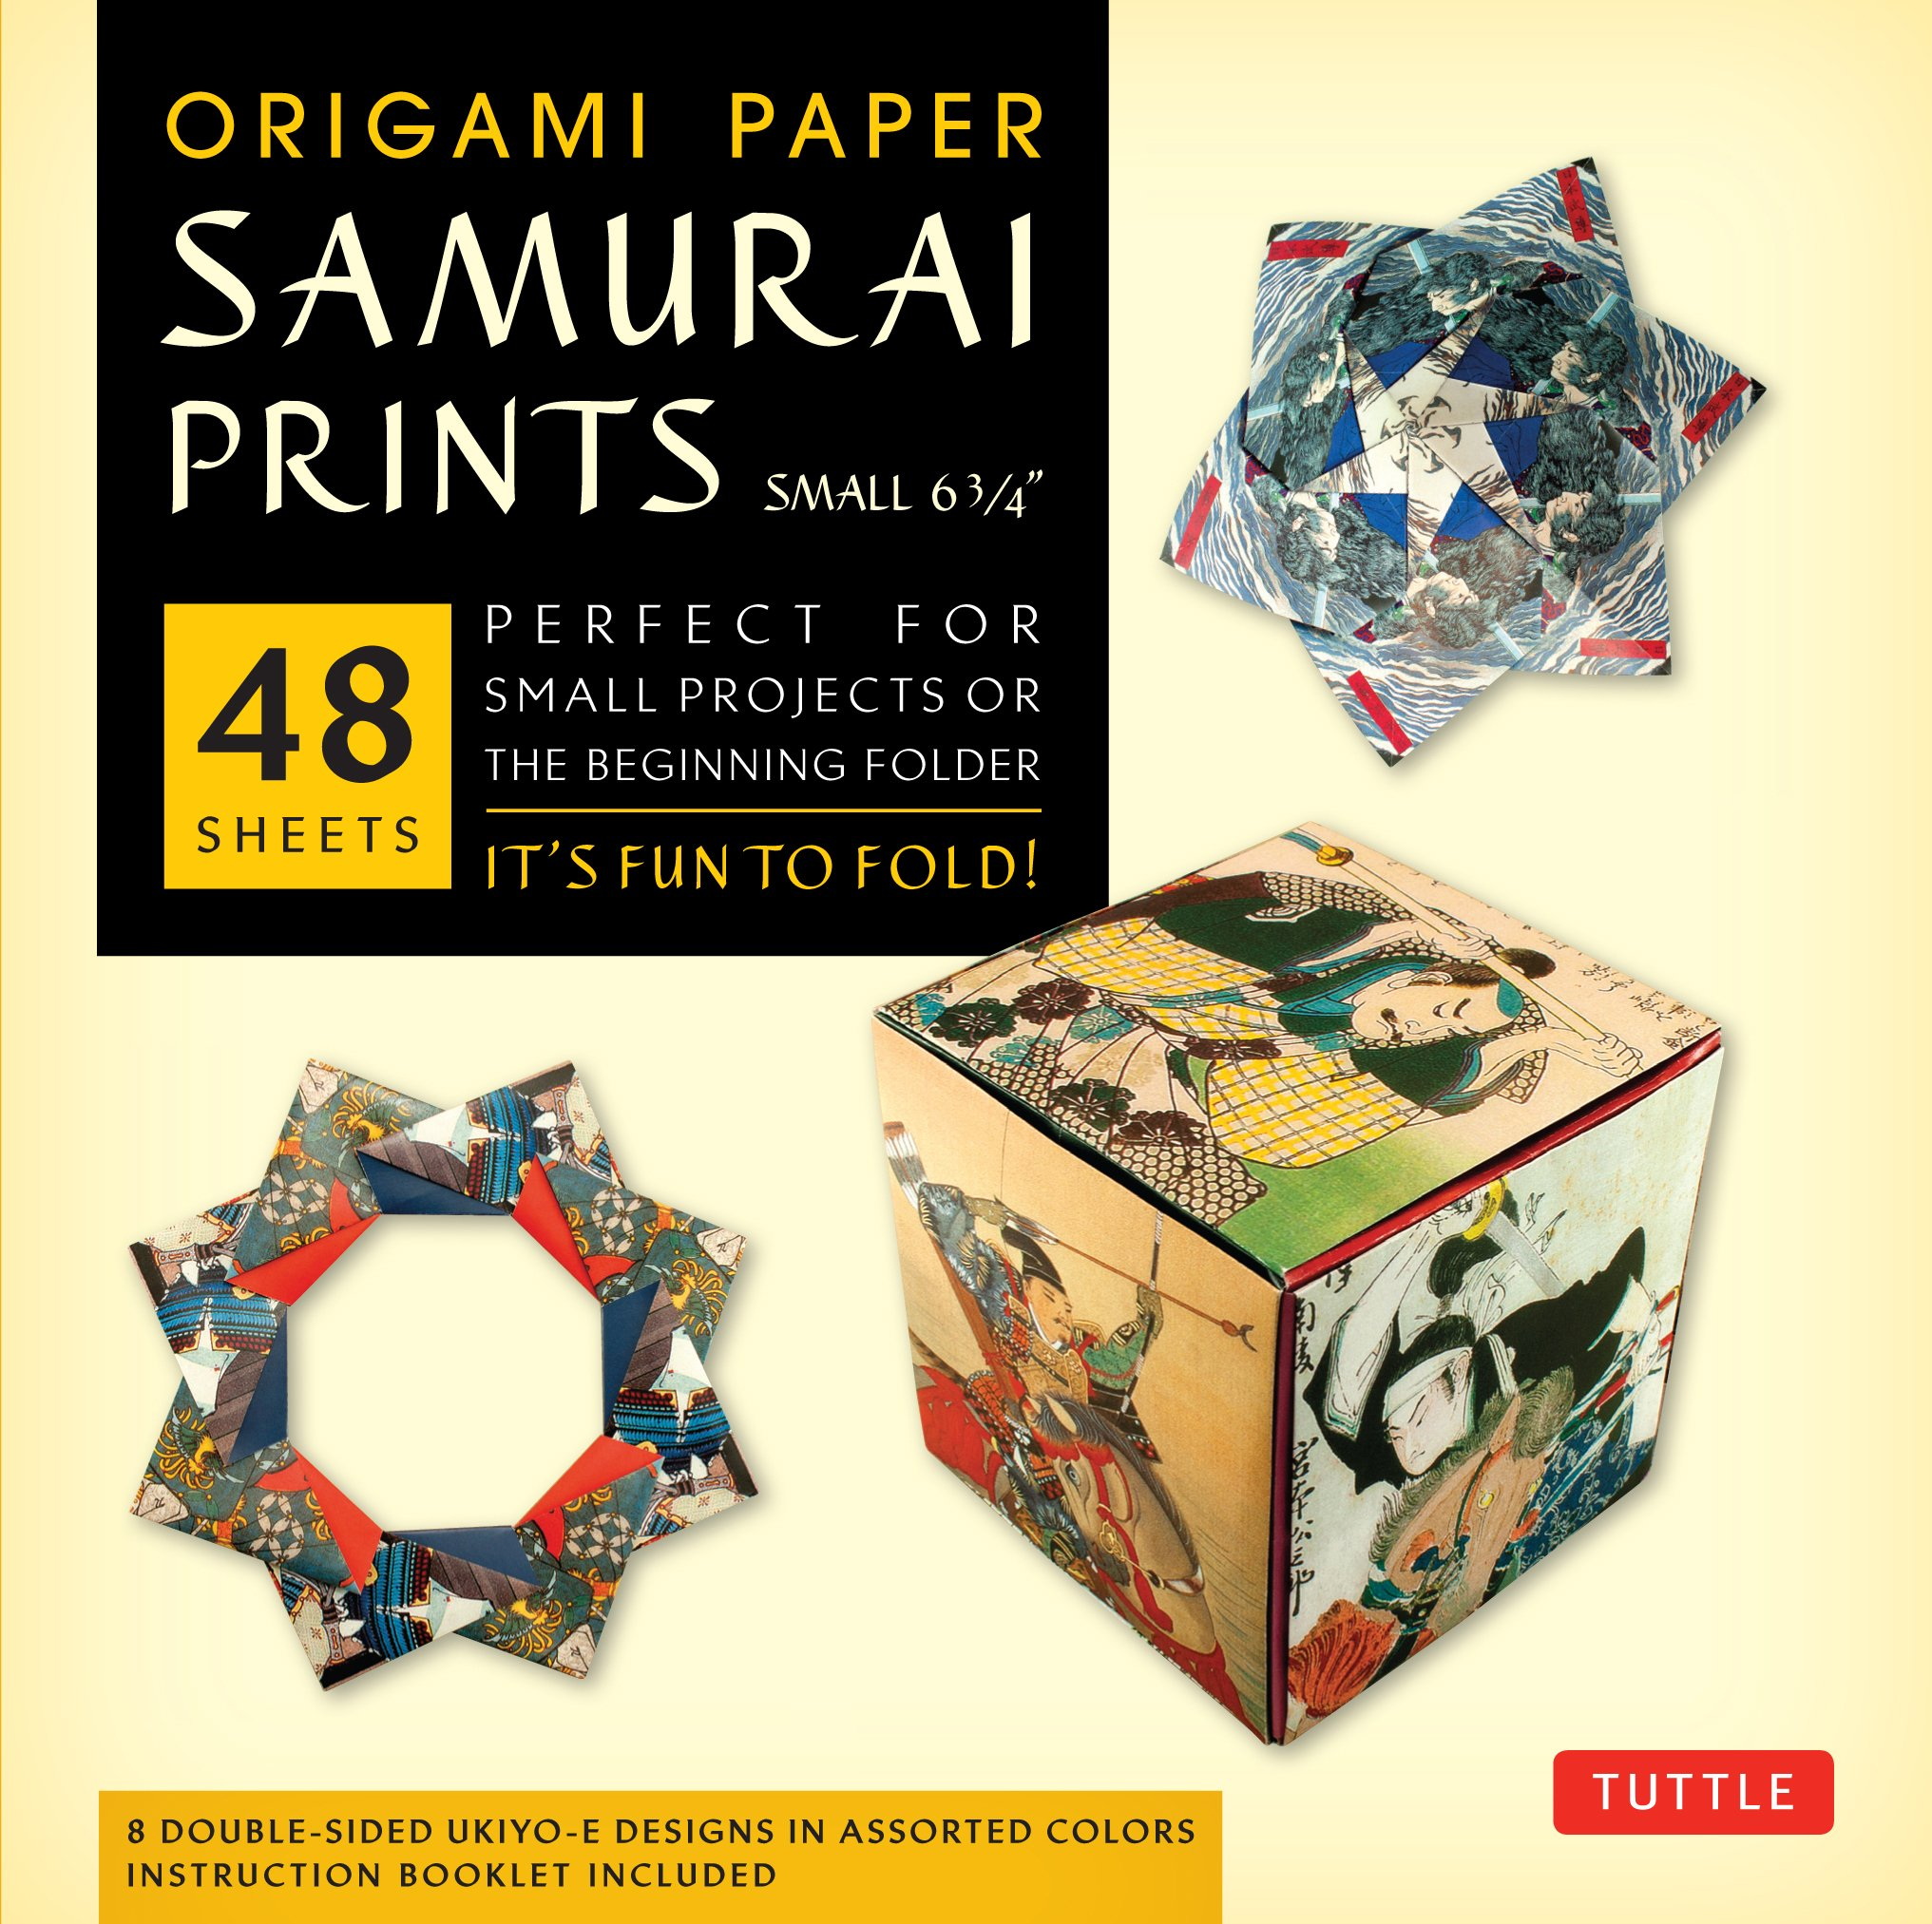 """Origami Paper - Samurai Prints - Small 6 3/4"""" - 48 Sheets: Tuttle Origami Paper: High-Quality Origami Sheets Printed with 8 Different Designs: Instructions for 6 Projects Included pdf epub"""